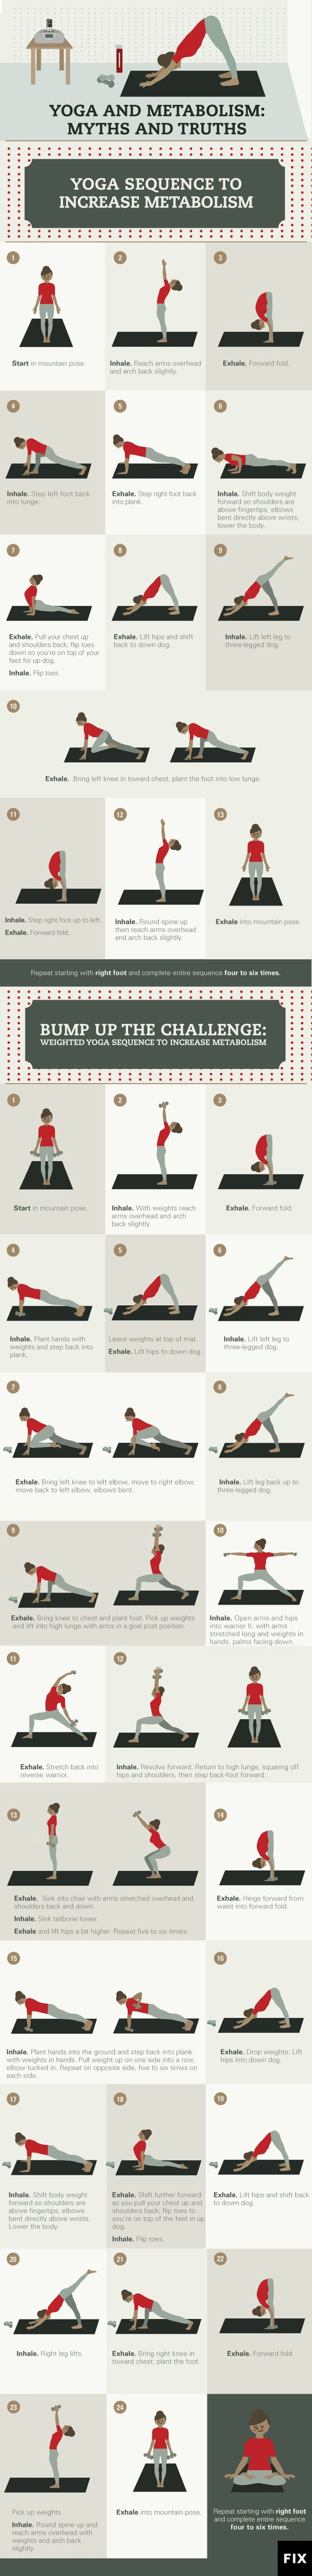 Yoga and Metabolism Myths and Truths #infographic ~ Visualistan